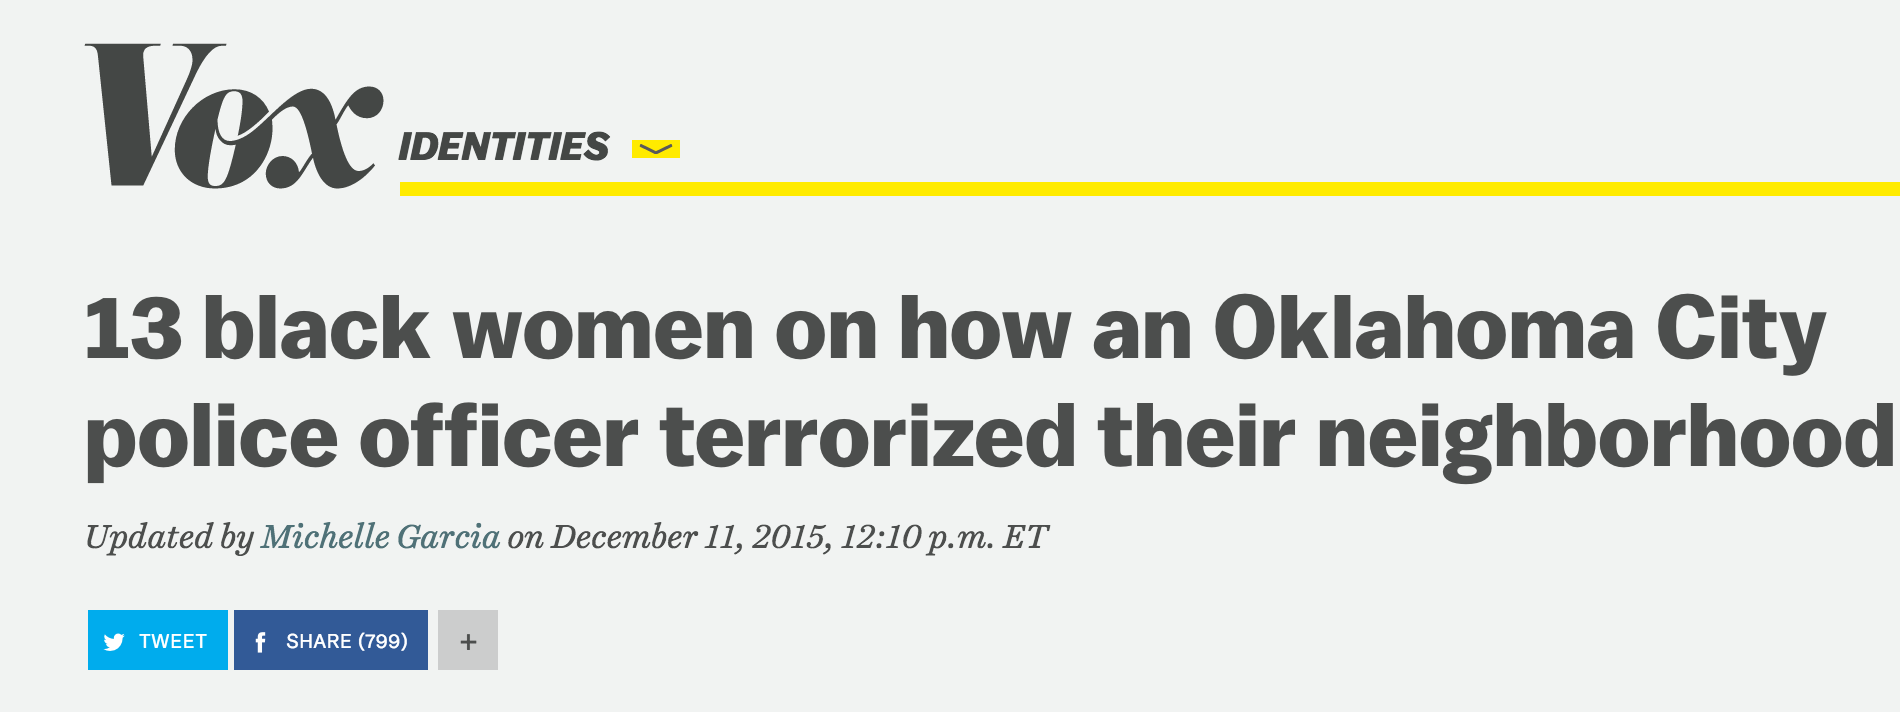 13 Black Women on how an Oklahoma City Police Officer Terrorized their Neighborhood, Vox, 12/11/15.